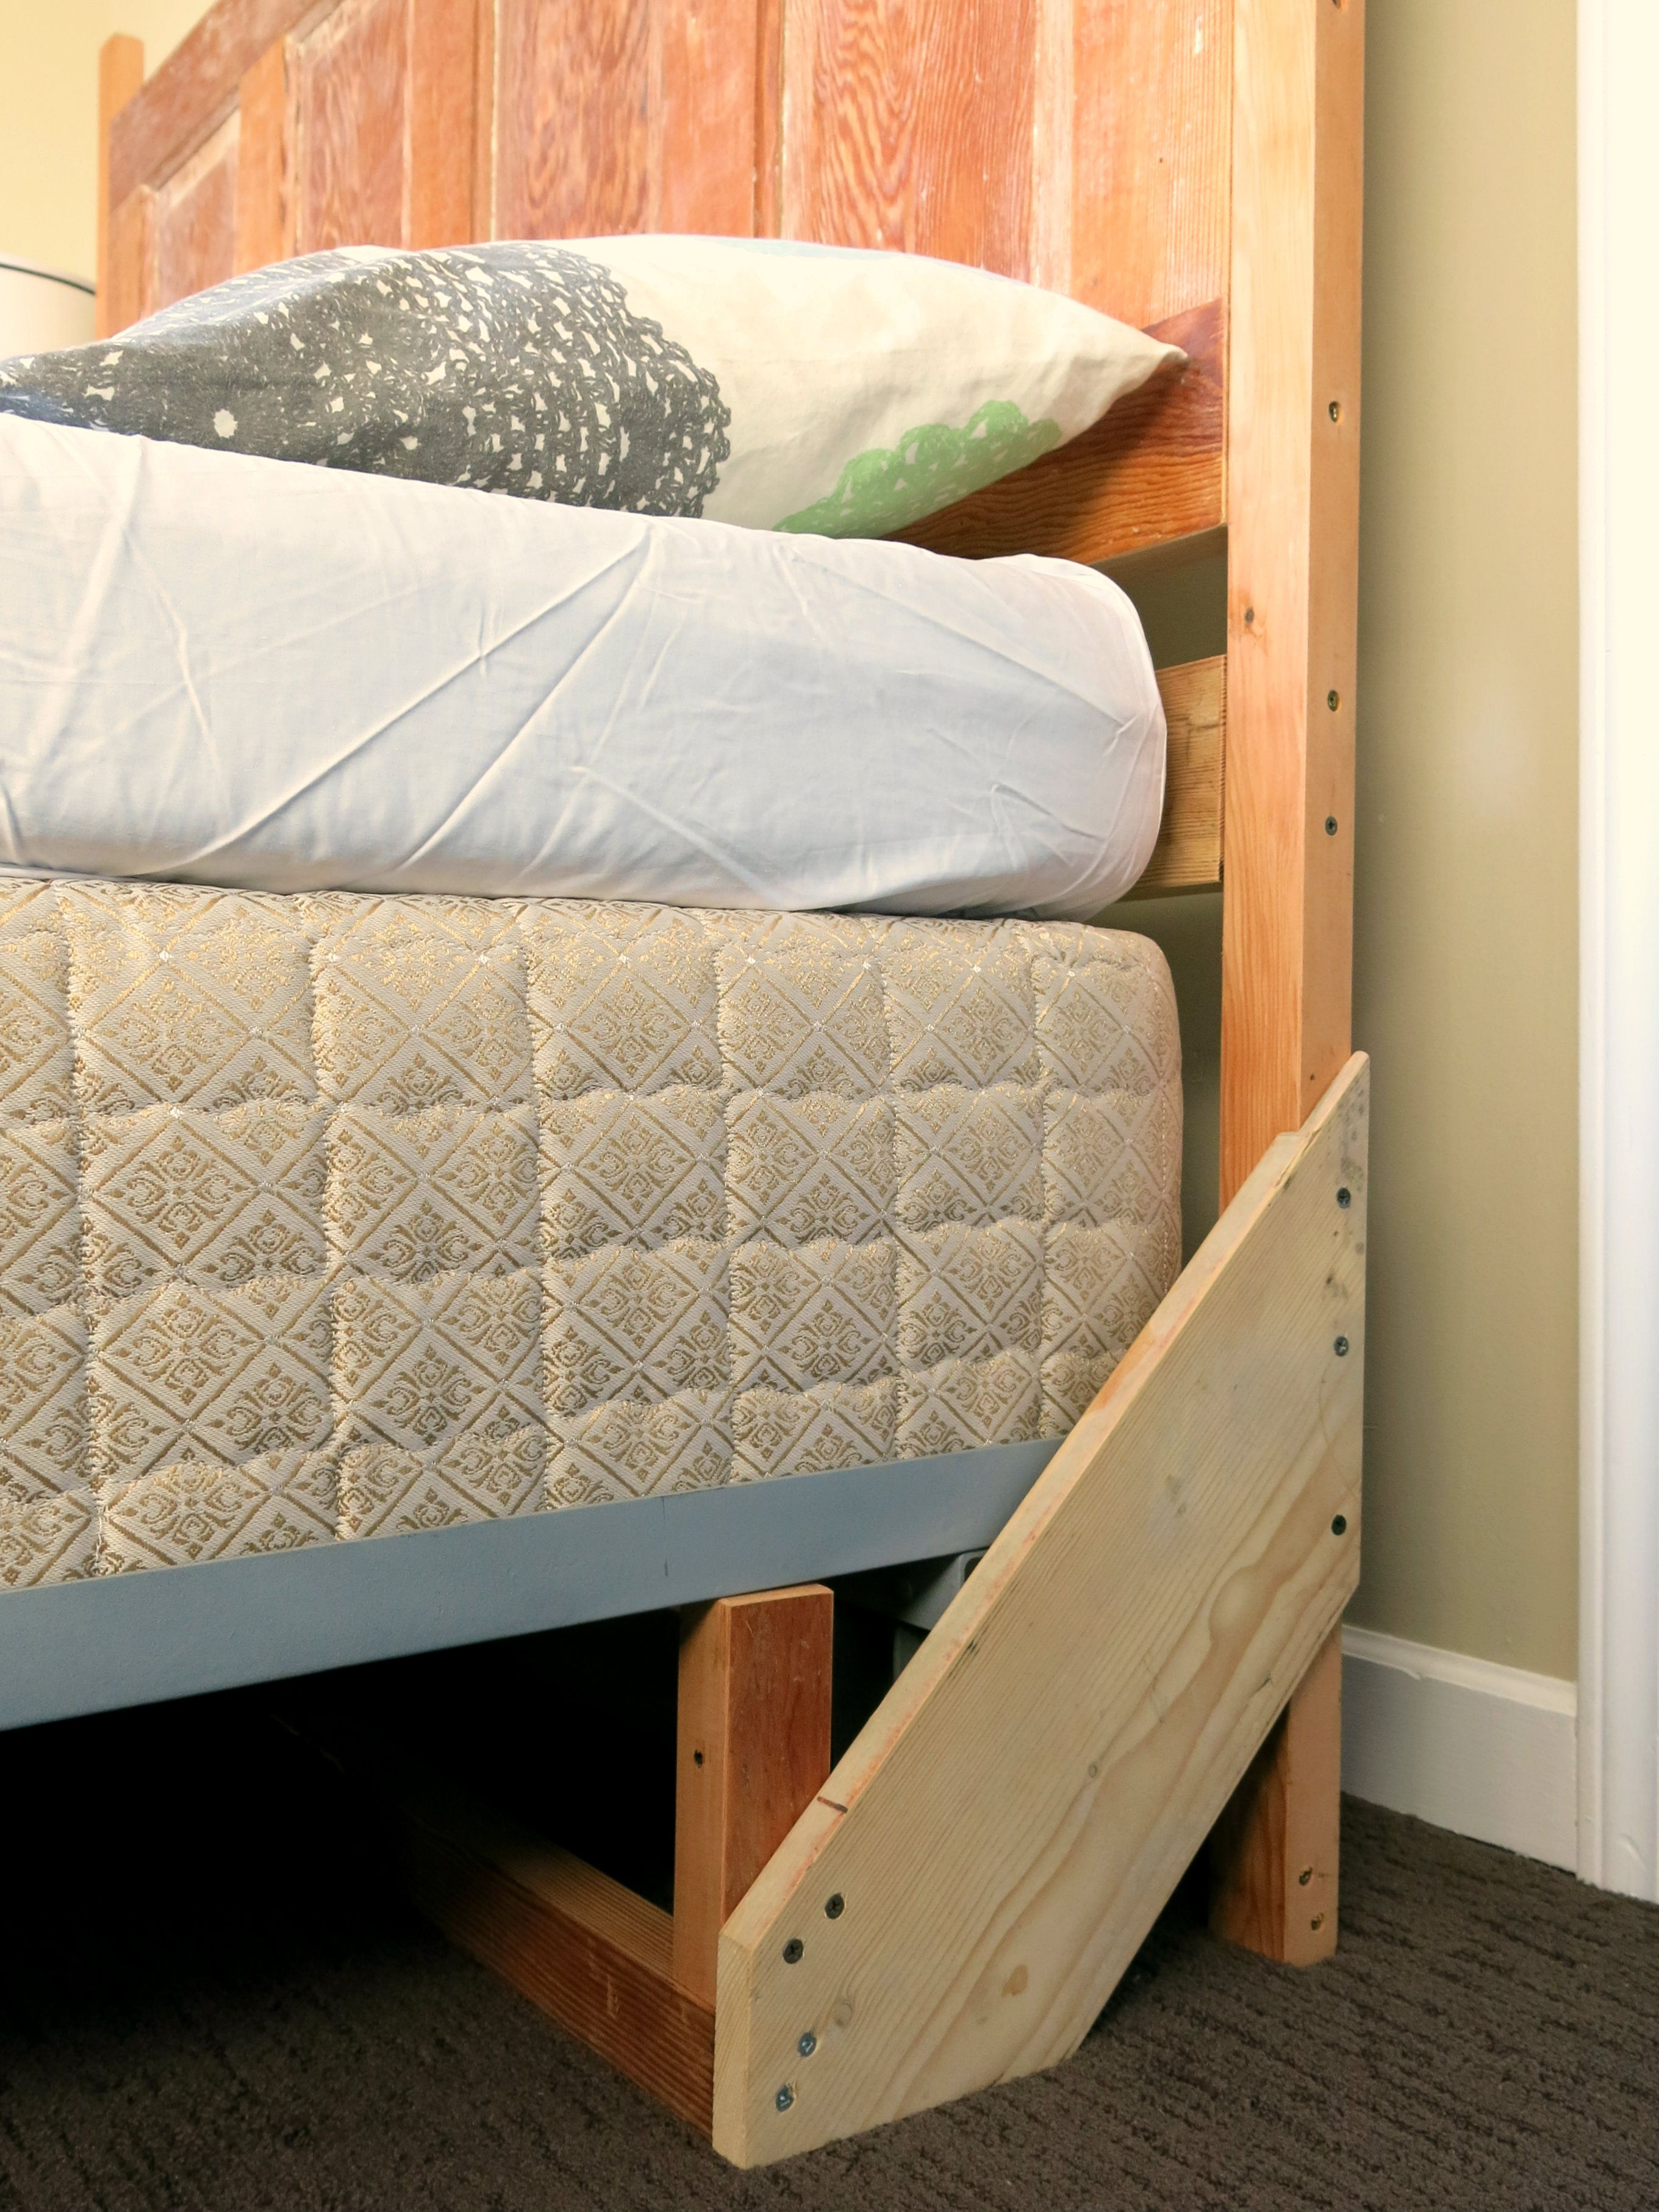 How To Build A Sturdy Freestanding Bed Frame Headboard